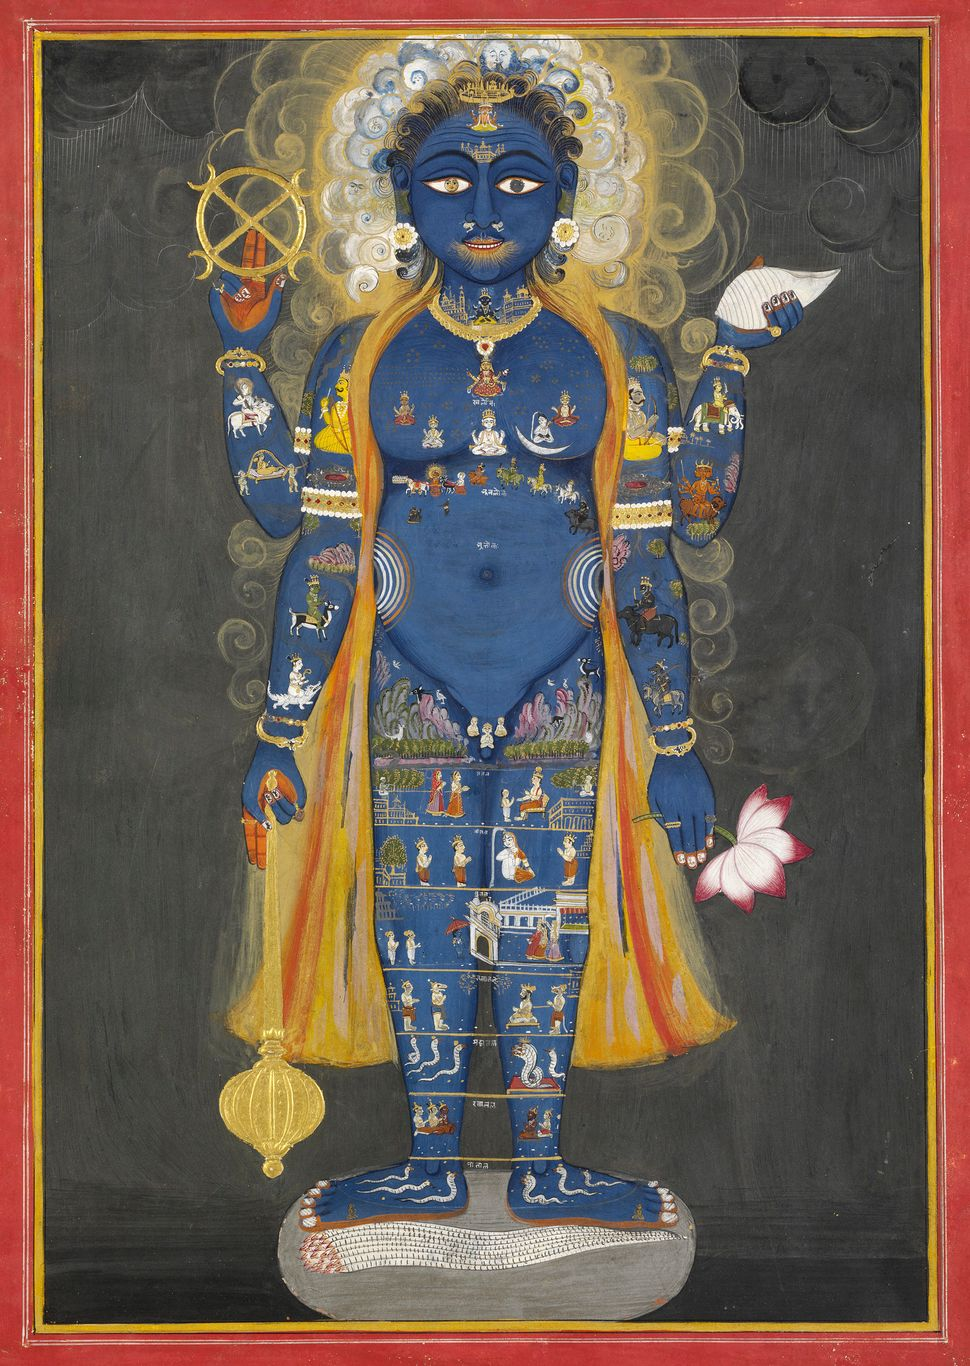 Vishnu Vishvarupa, c. 1800–1820. India, Rajasthan, Jaipur. Opaque watercolor and gold on paper; 38.5 x 28 cm. Victoria and Al